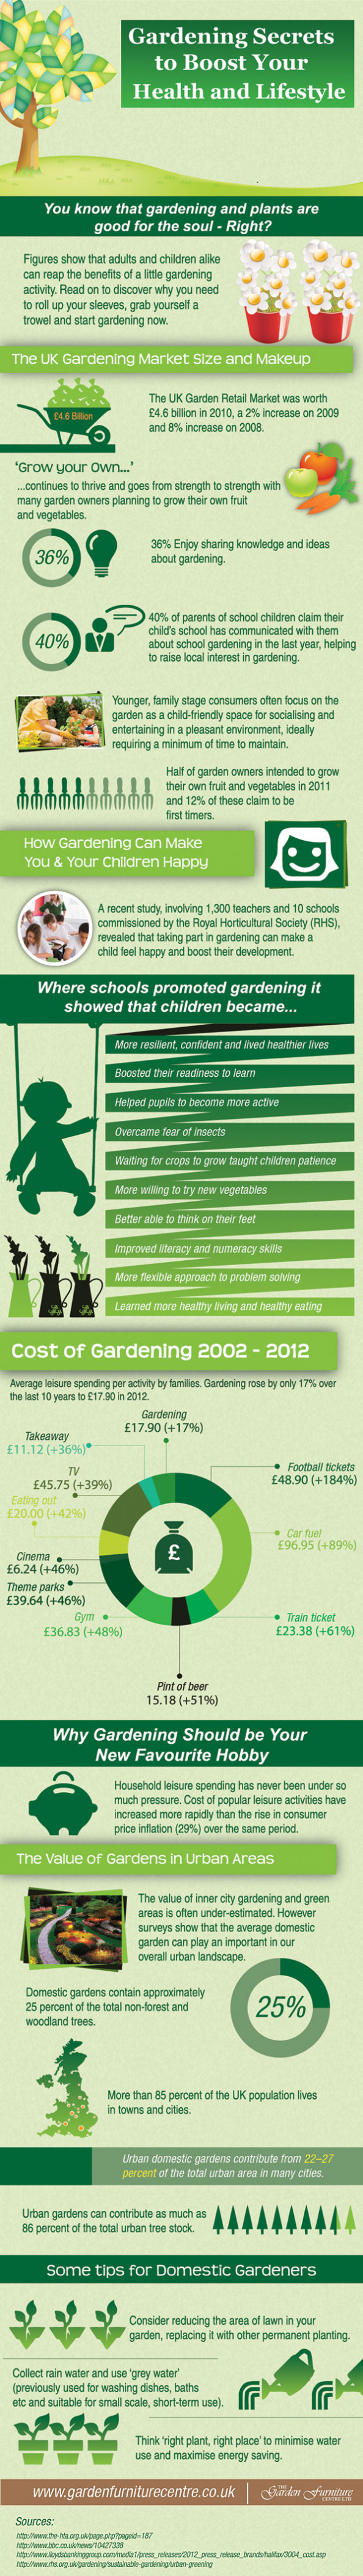 Gardening Secrets to Boost Your Health and Lifestyle Infographic